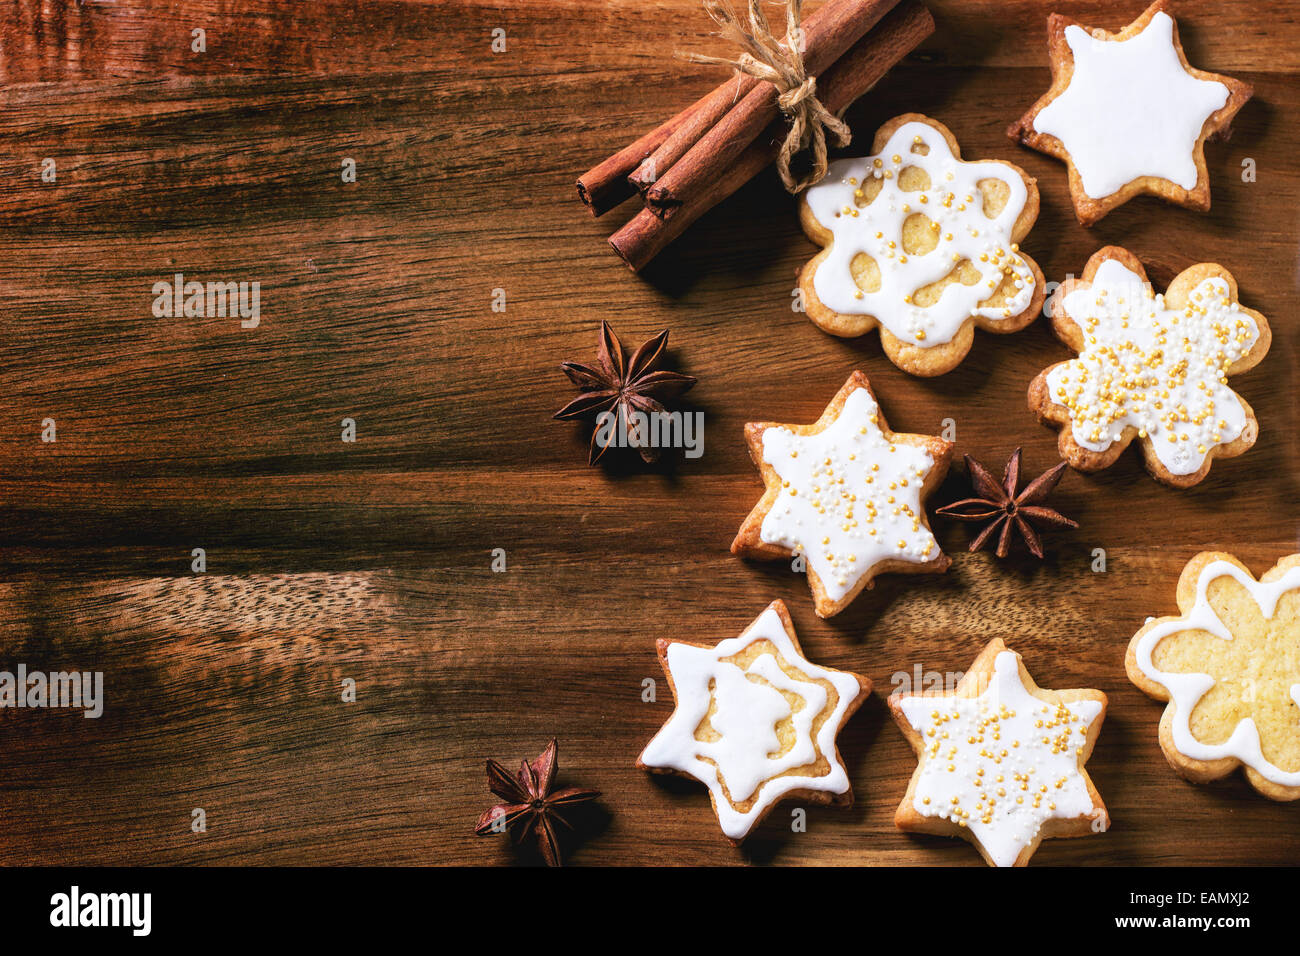 Christmas Cookies With Anise Stars And Cinnamon Sticks Over Wooden